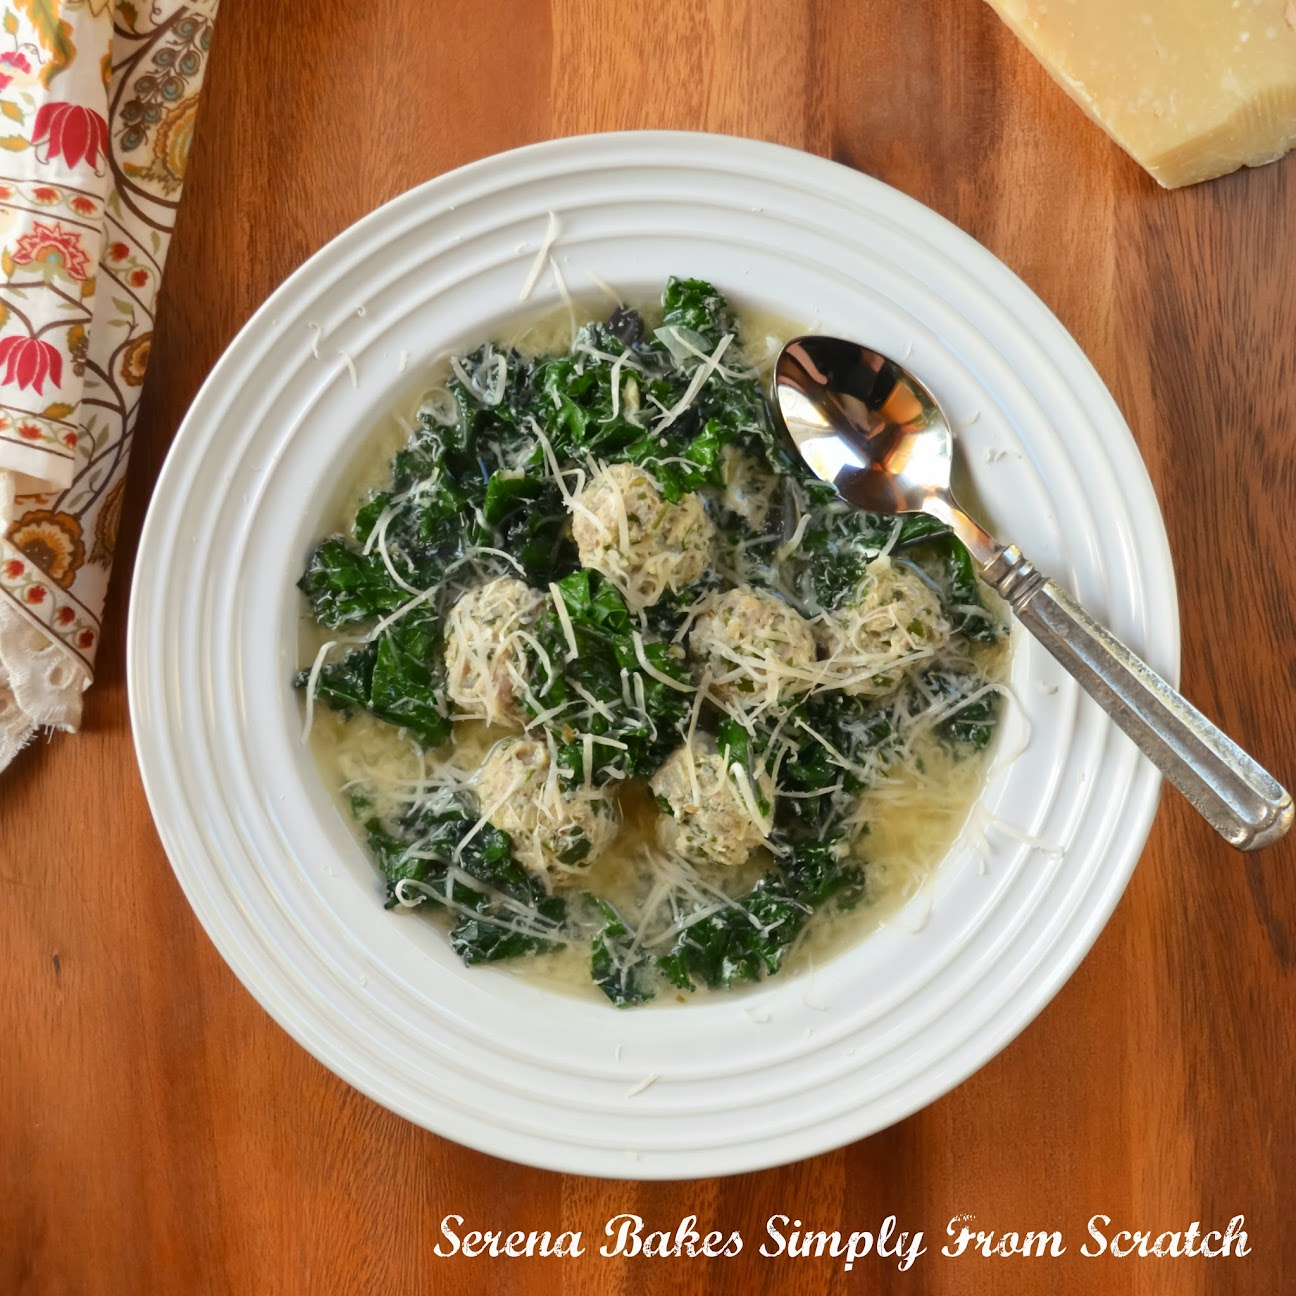 Italian Wedding Soup With Meatballs | Serena Bakes Simply From Scratch